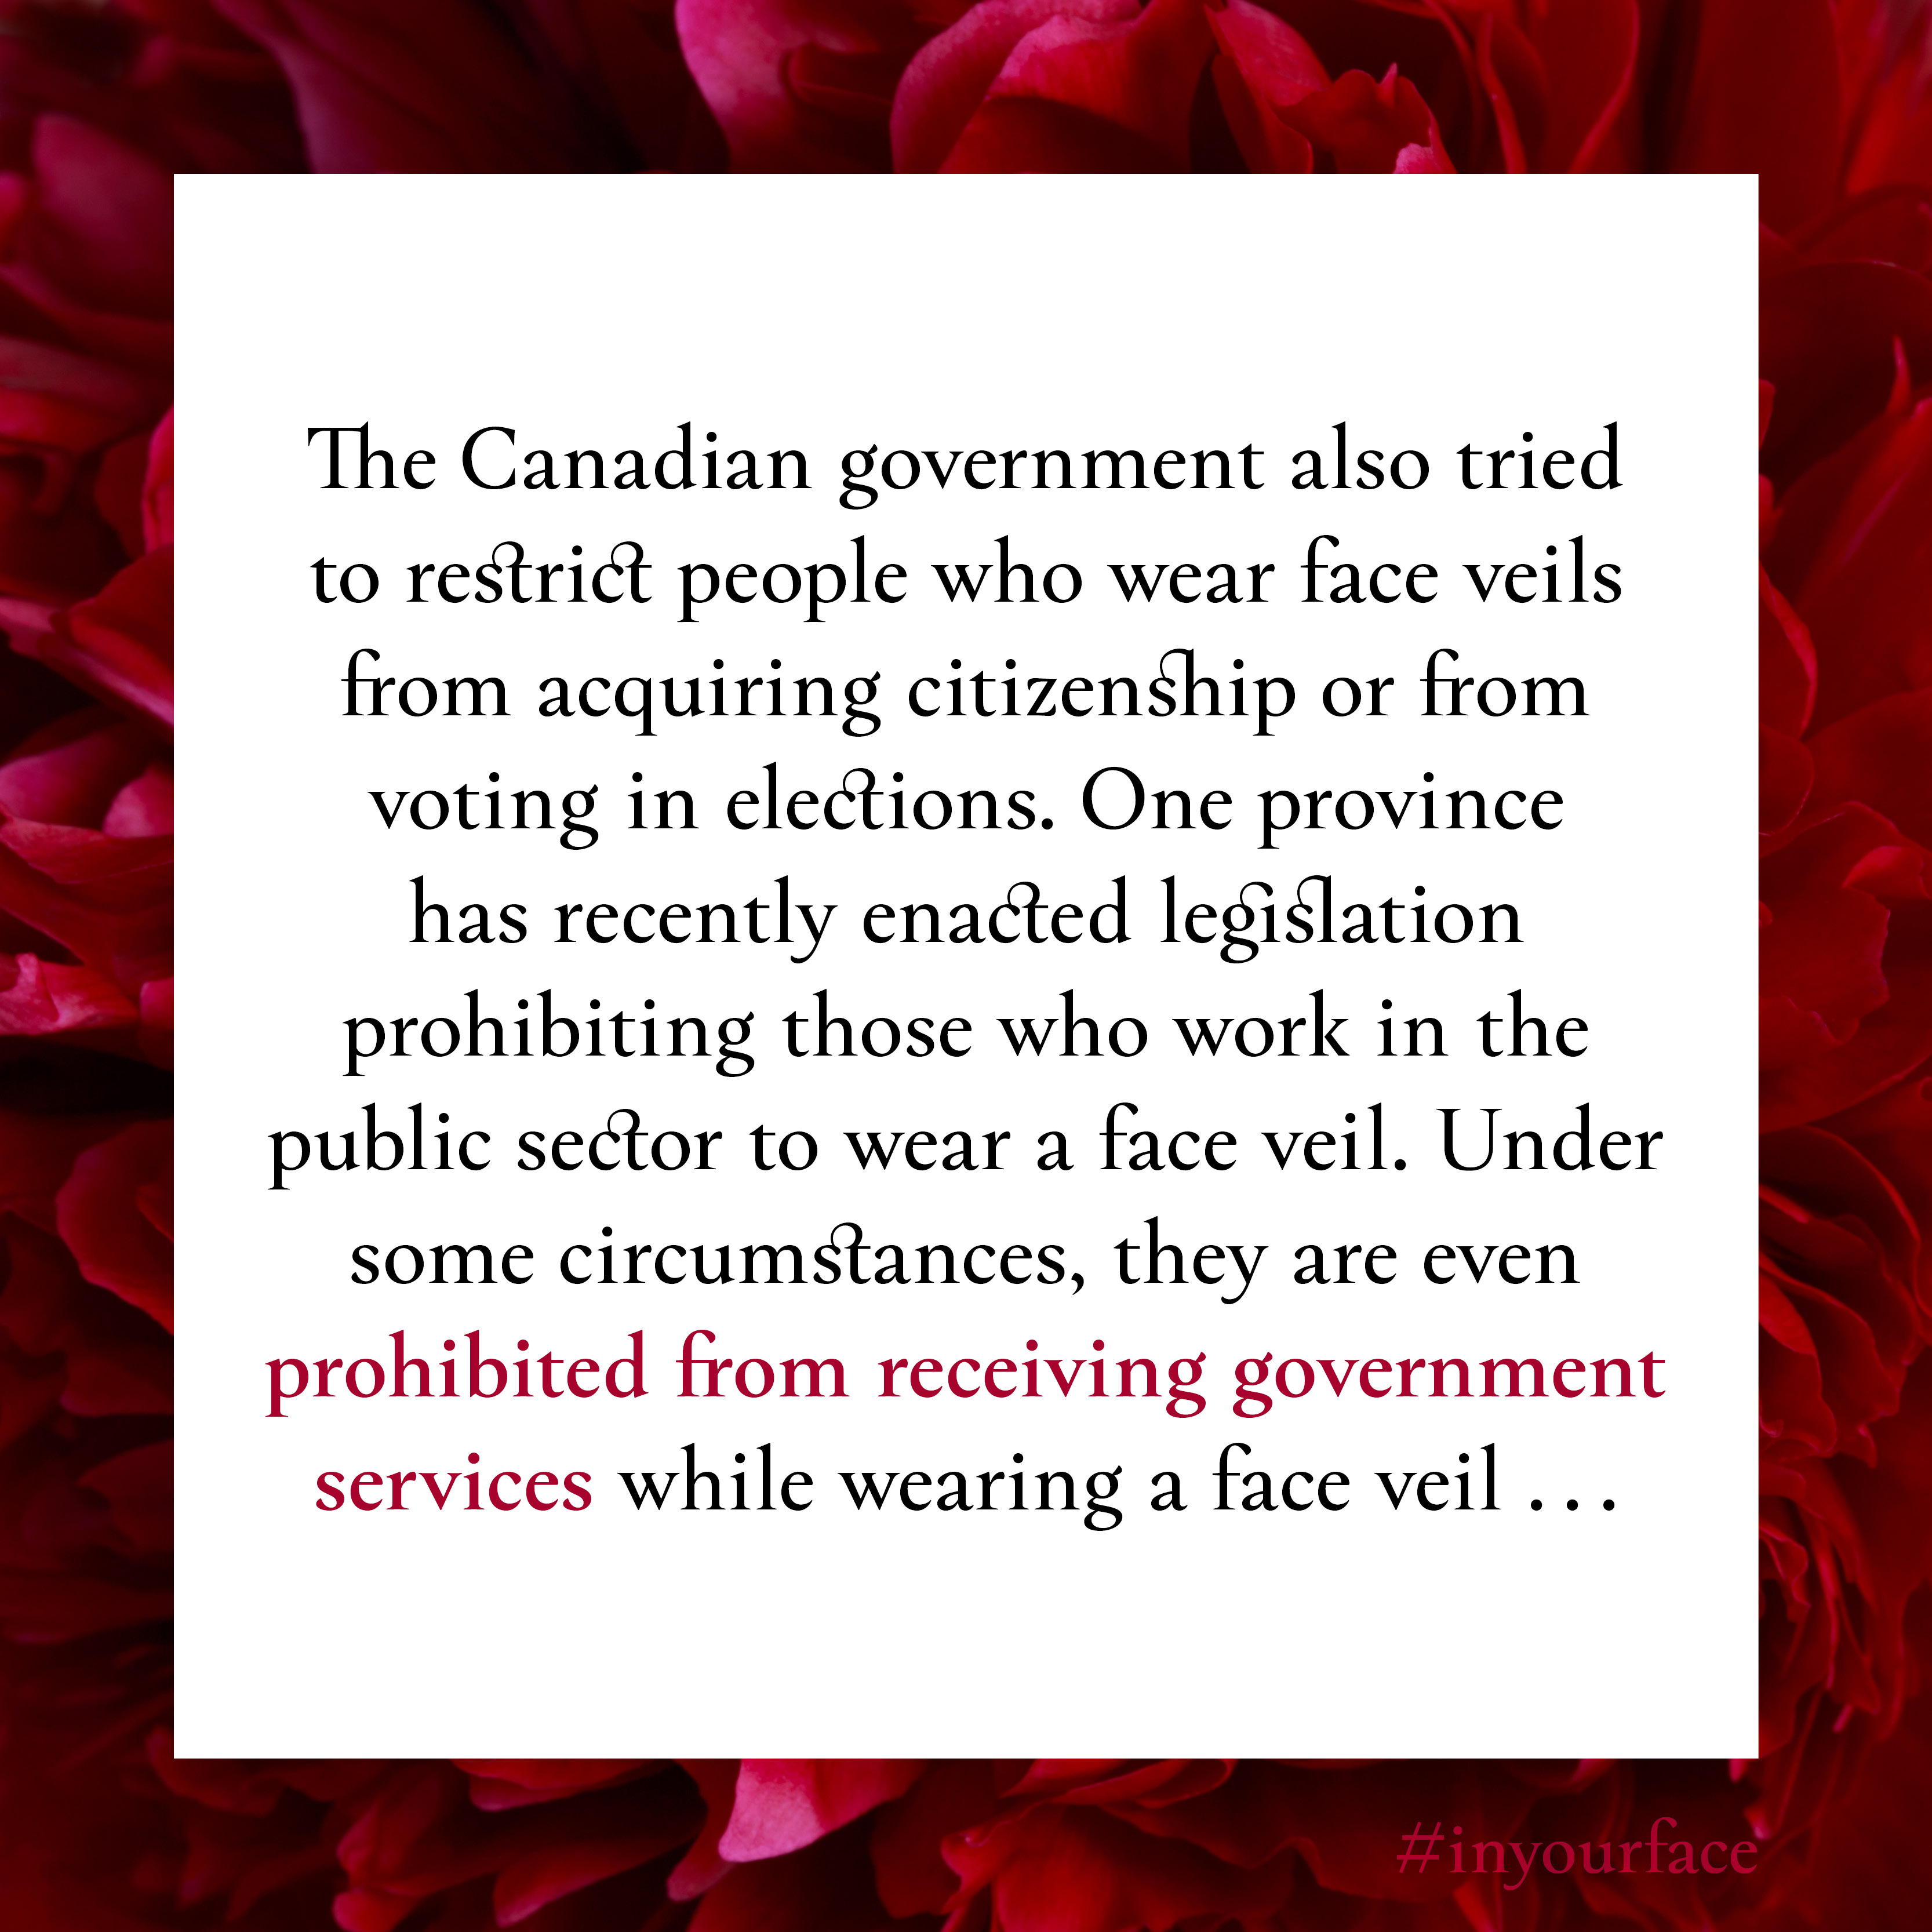 """Excerpt from In Your Face by Natasha Bakht. It reads: """"The Canadian government also tried to restrict people who wear face veils from acquiring citizenship or from voting in elections. One province has recently enacted legislation prohibiting those who work in the public sector to wear a face veil. Under some circumstances, they are even prohibited from receiving government services while wearing a face veil ..."""""""